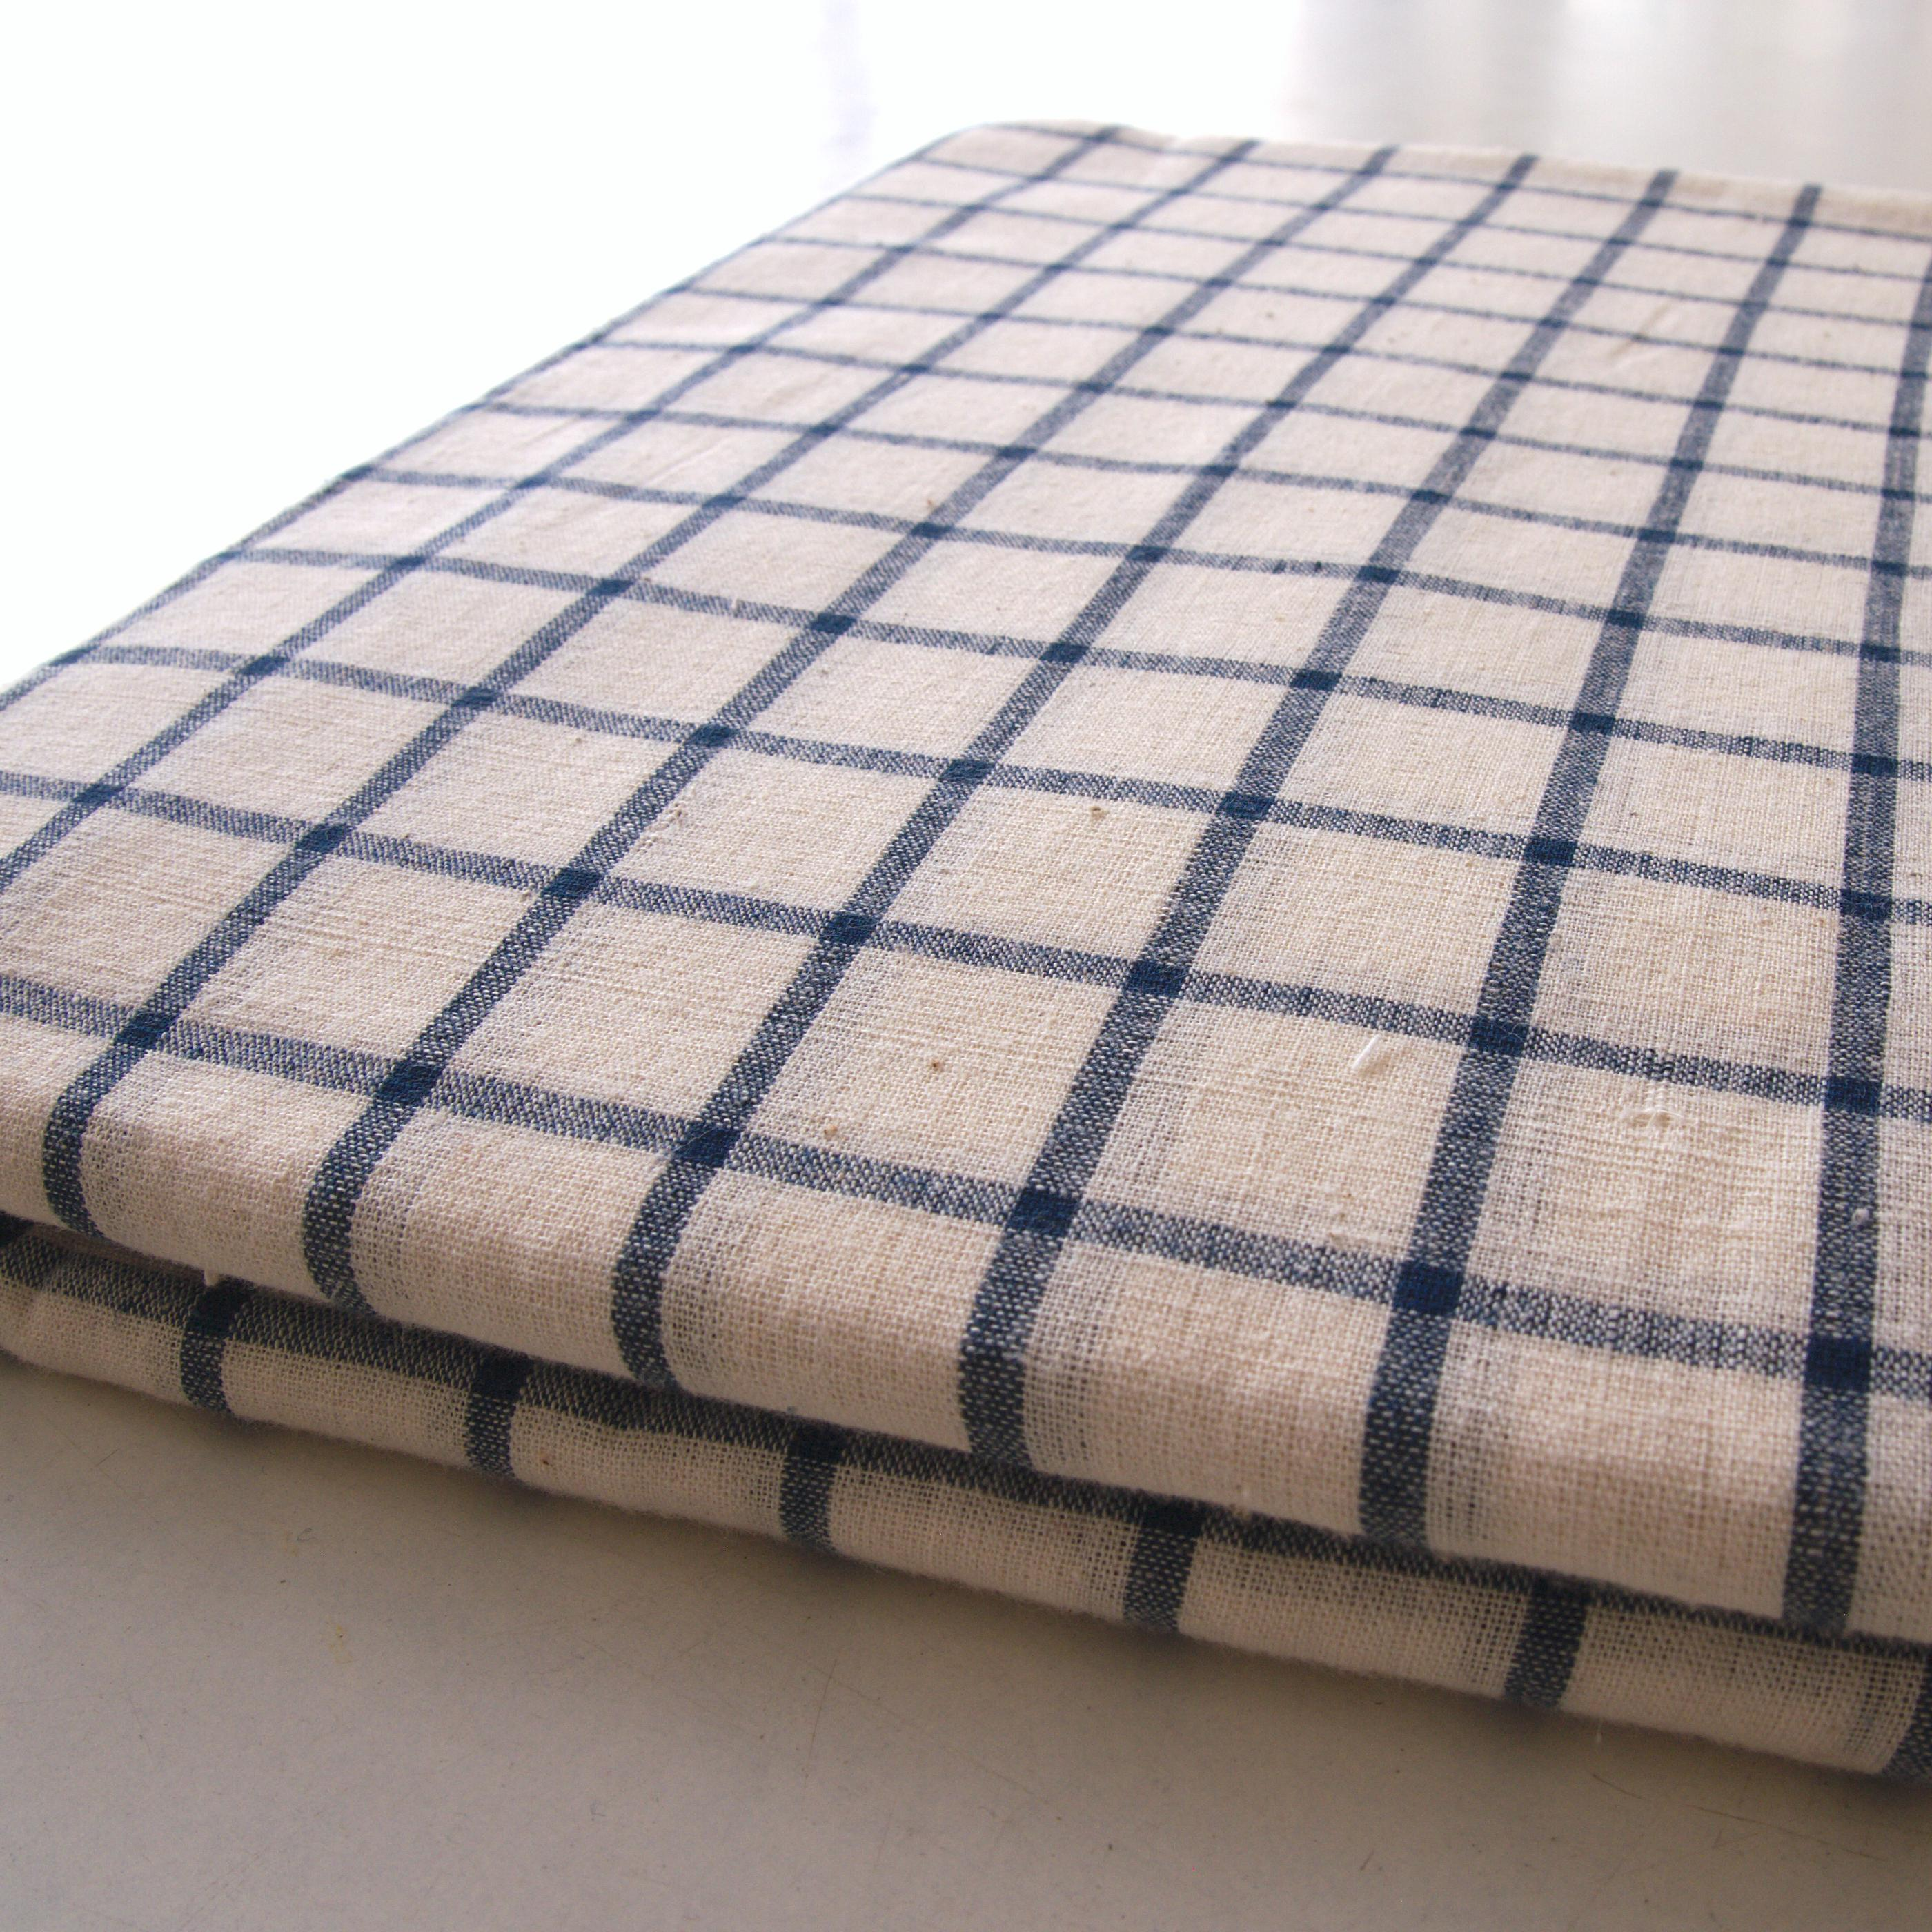 100% Handloom Woven Cotton - White Warp & Weft, White and Indigo Warp & Weft - Chequers - Bolt